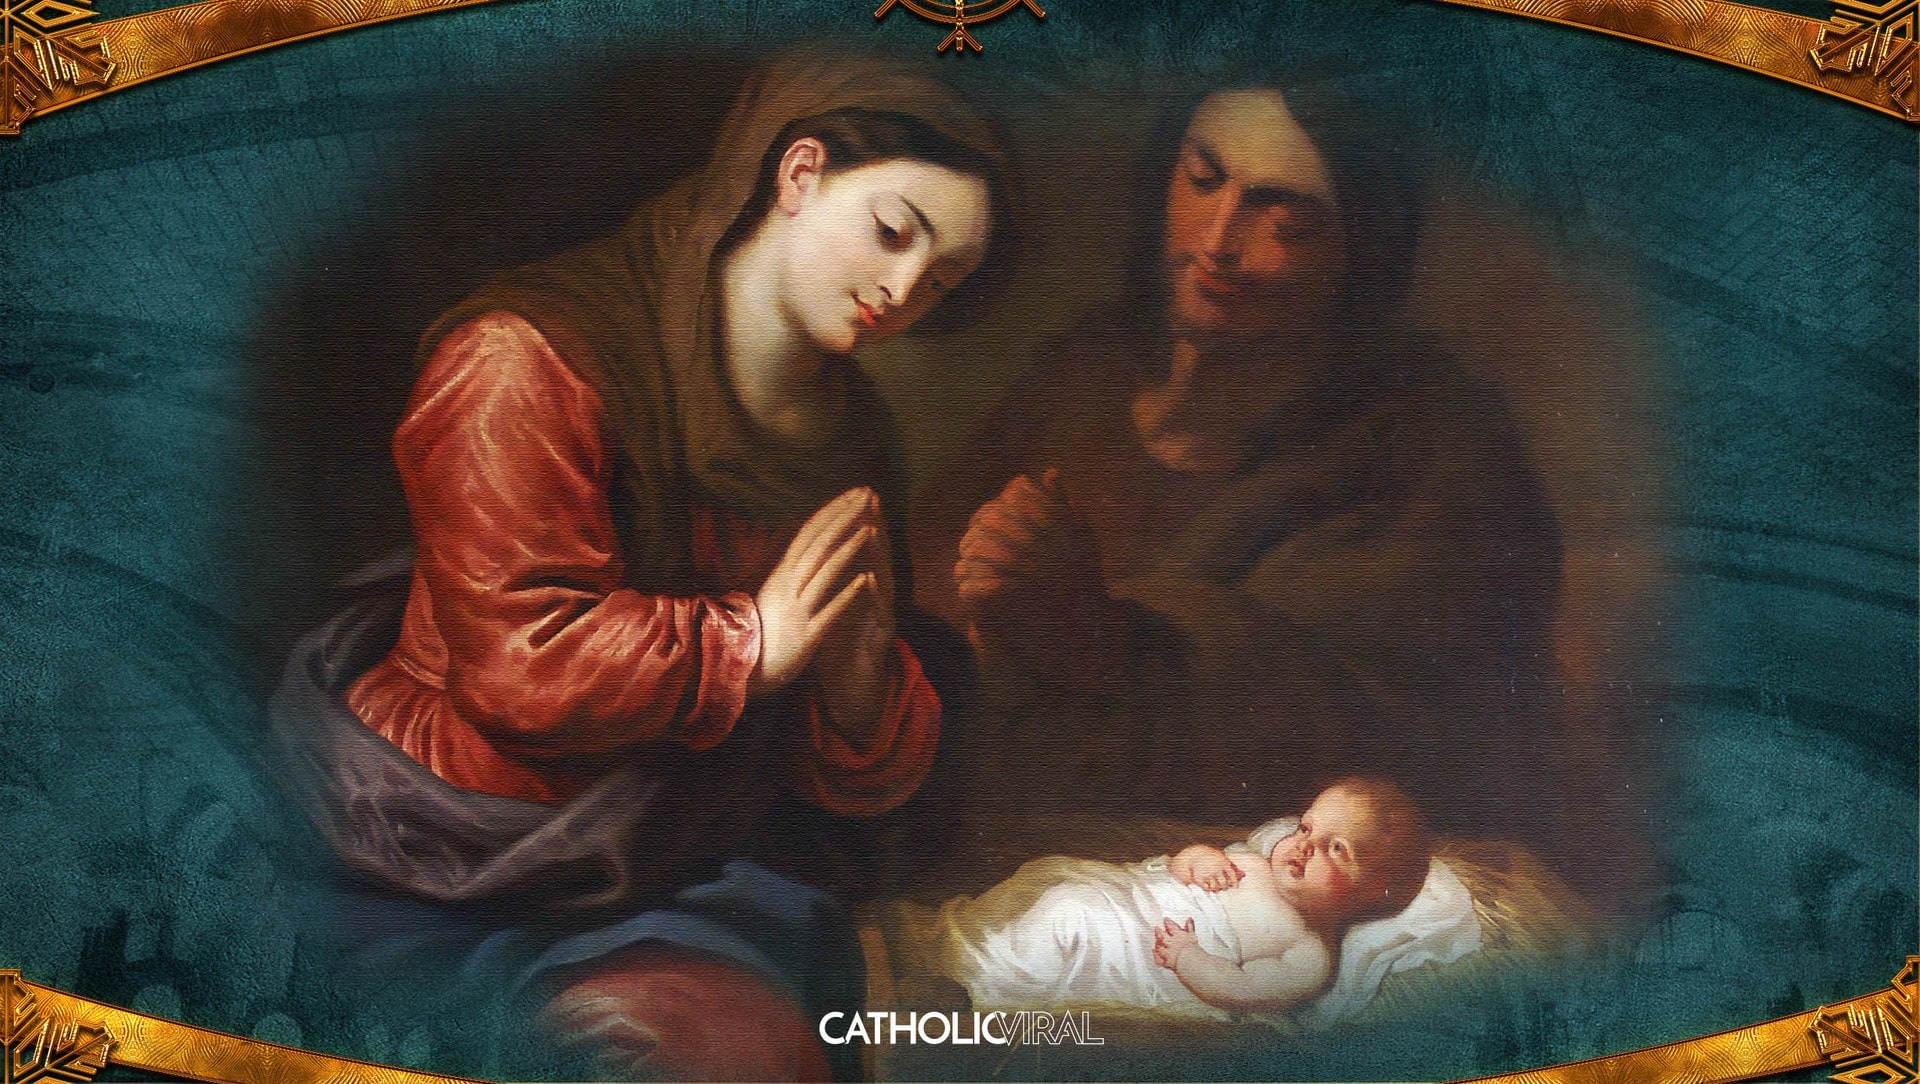 valentines day quotes free - 18 Gorgeous Classical Paintings of the Nativity HD